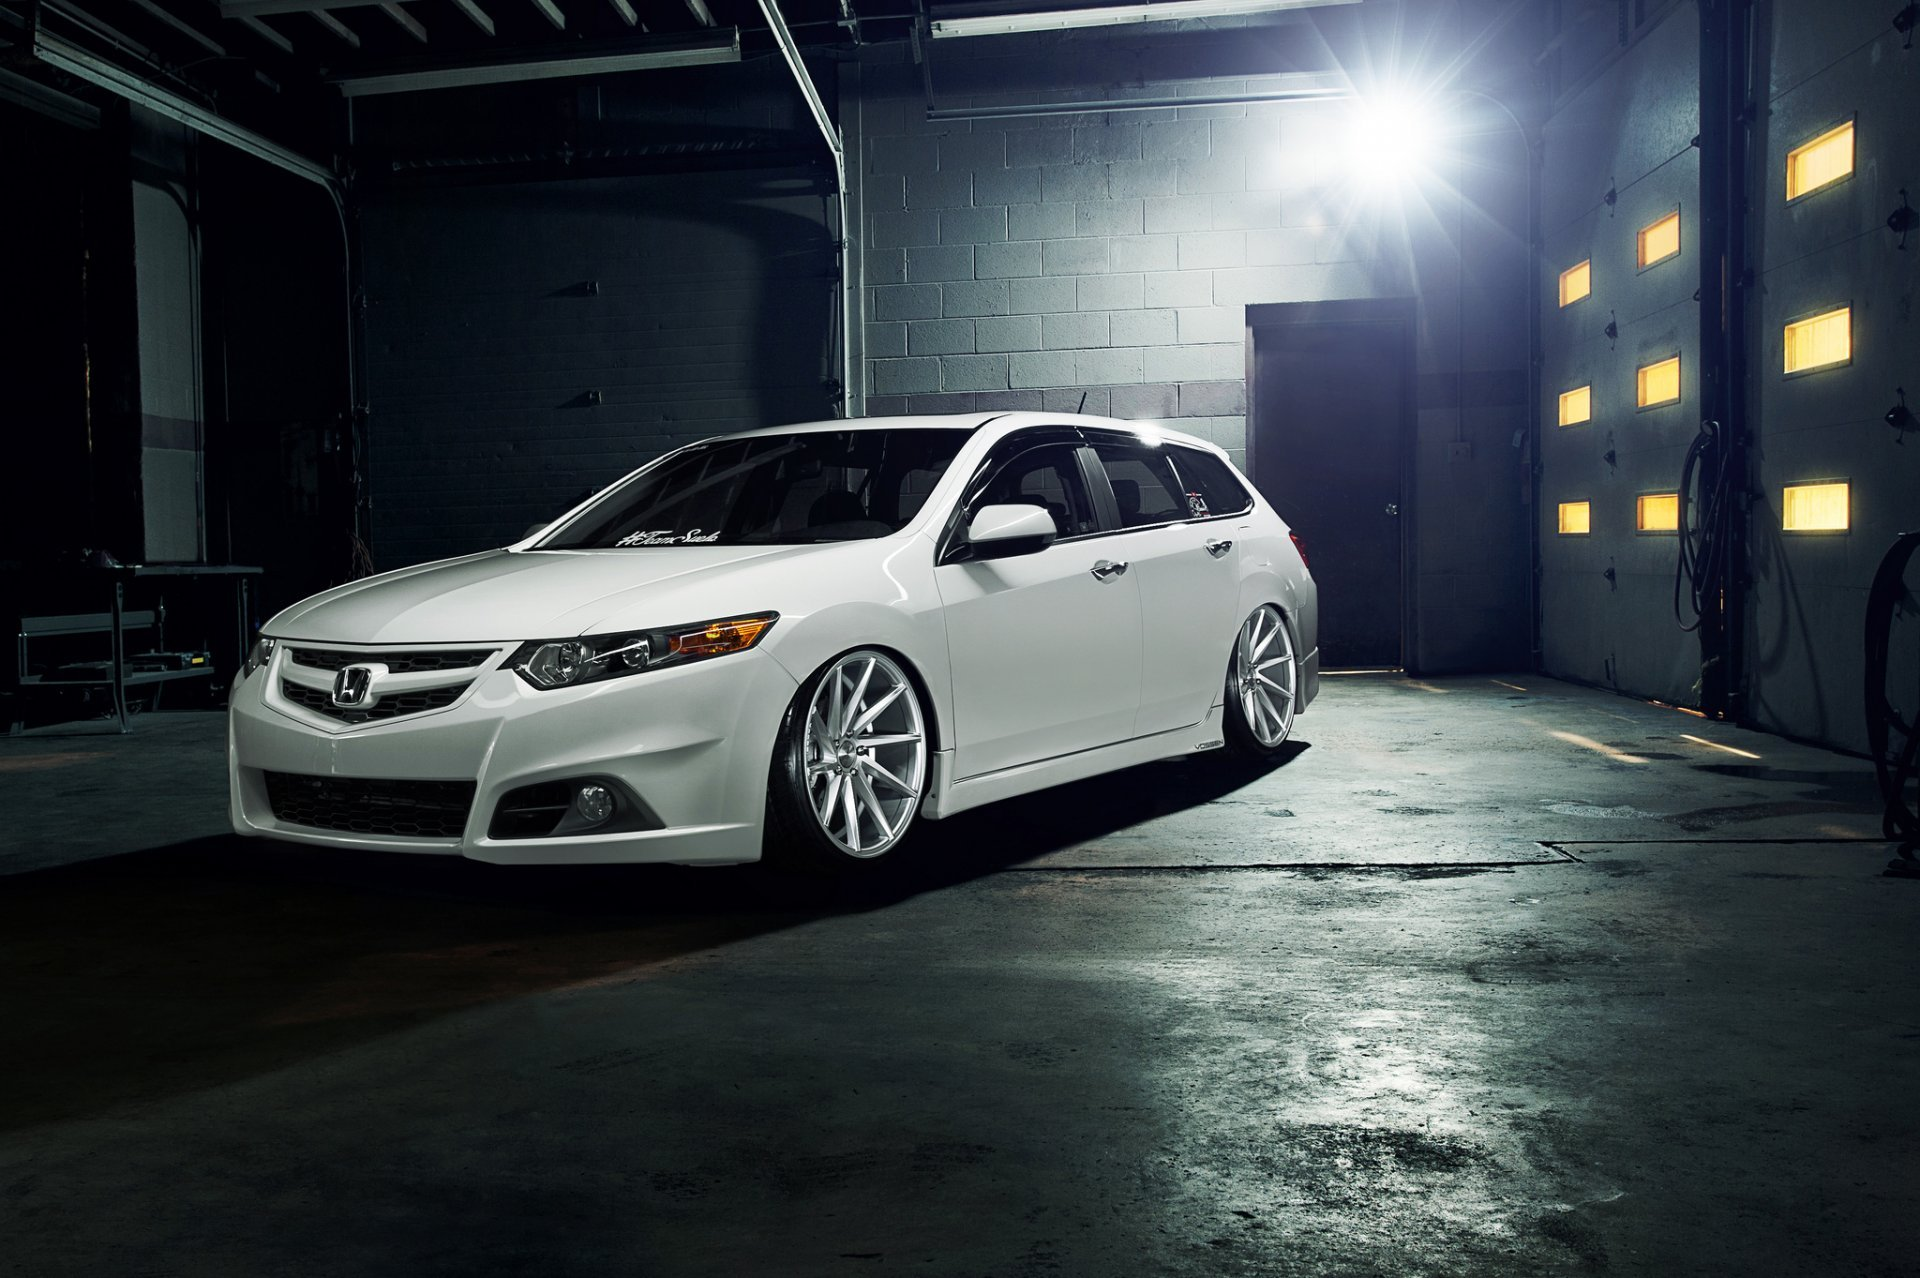 Free Download Acura Tsx Wallpaper 12 1920 X 1278 Stmednet 1920x1278 For Your Desktop Mobile Tablet Explore 34 Acura Tsx Wallpapers Acura Tsx Wallpapers Acura Wallpaper Acura Wallpapers